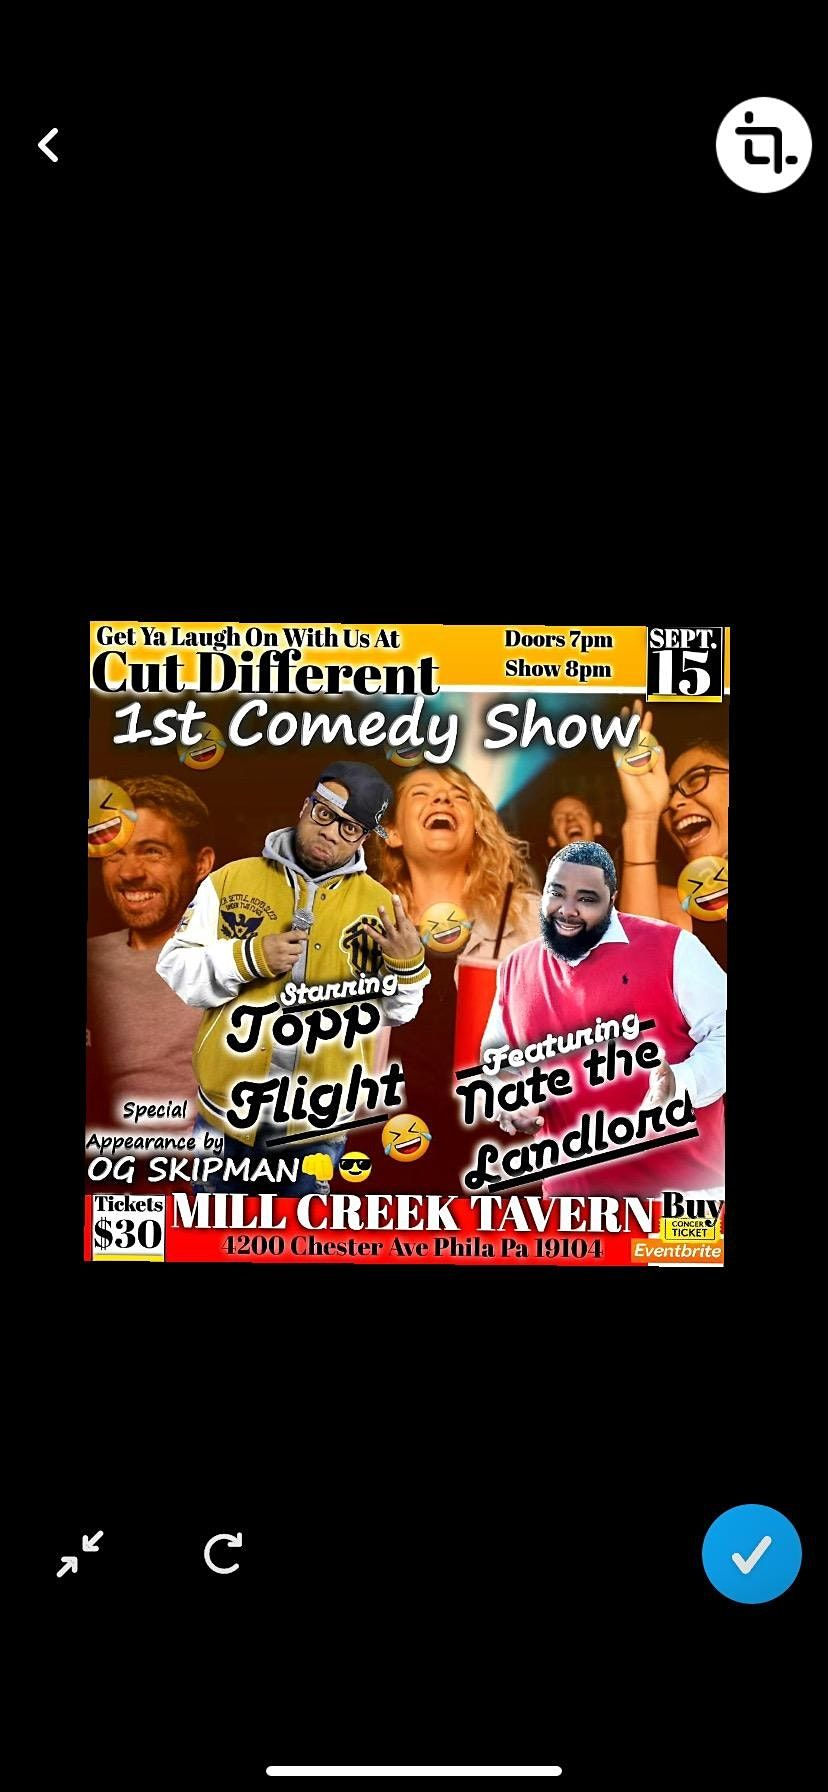 Cut different Comedy Show